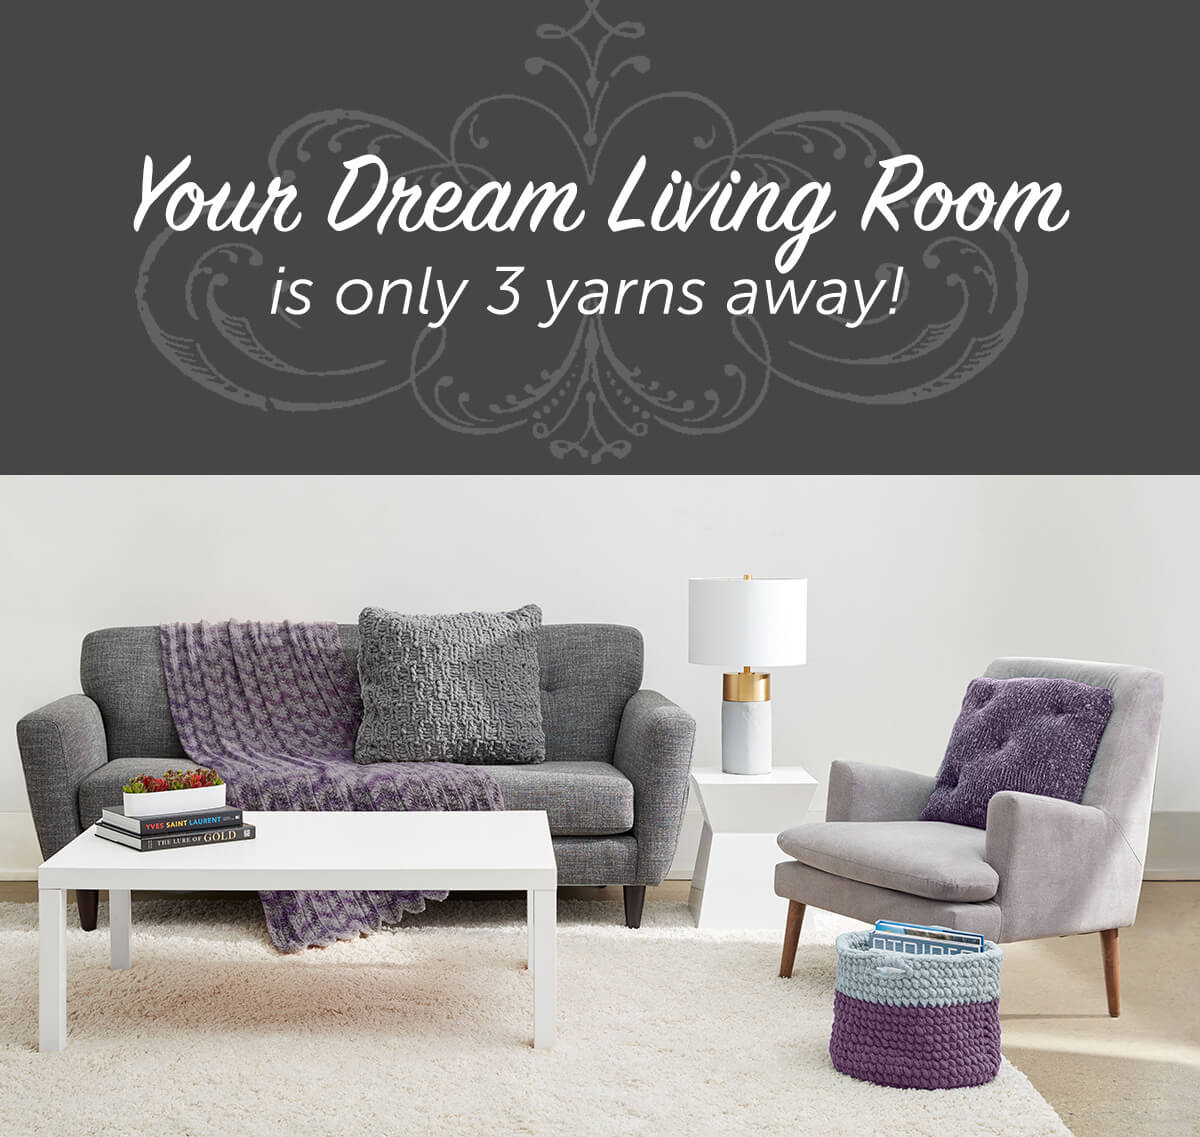 Your Dream Living Room is only 3 yards away.